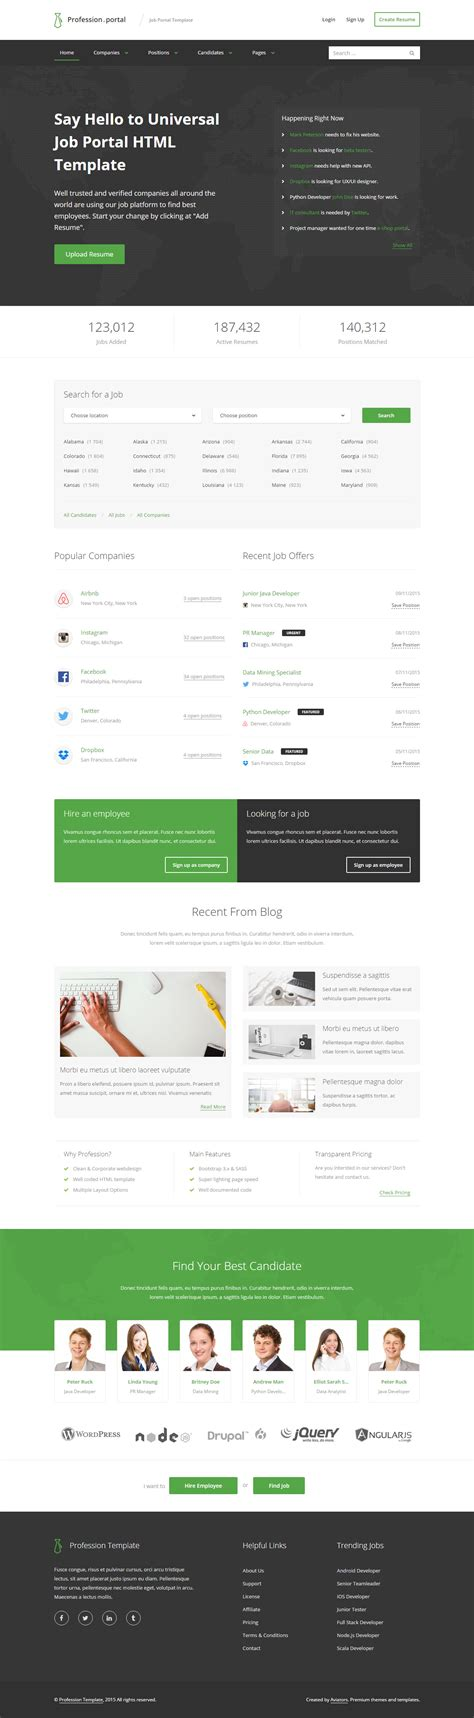 Lovely Free Web Templates Html Templates Design Board Website Template